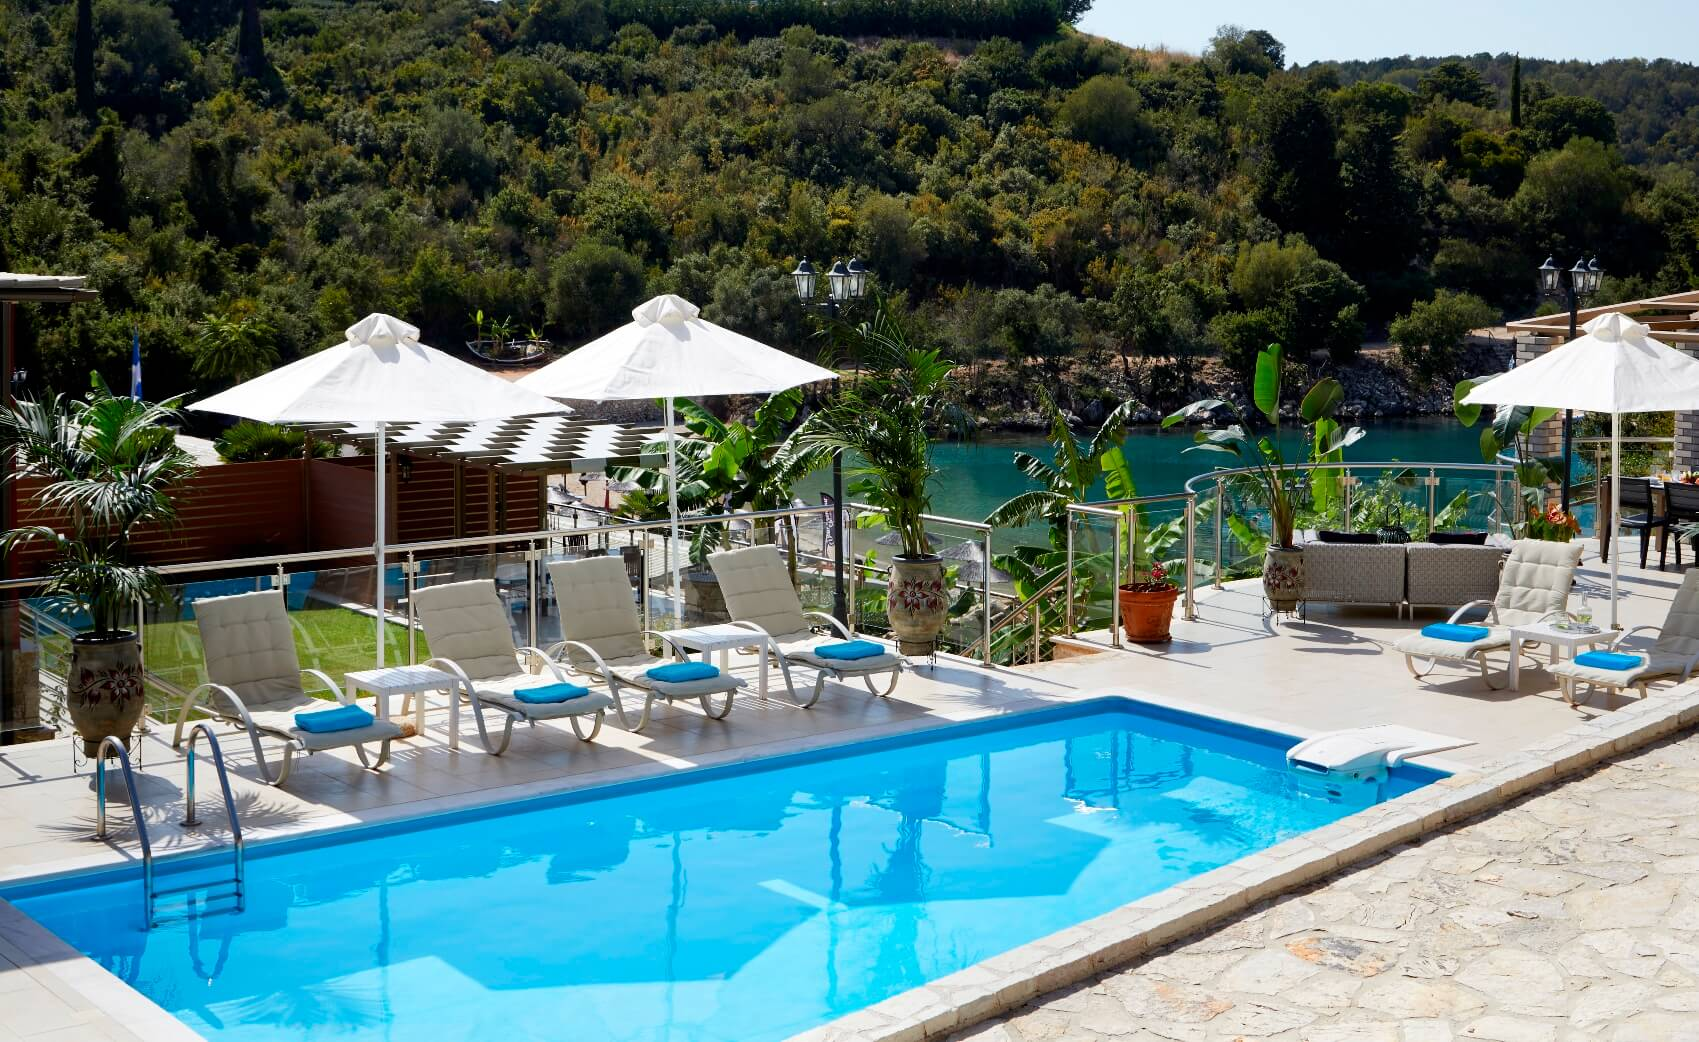 Karvouno-Villas-sivota-luxury-villas-private-kentriki-2